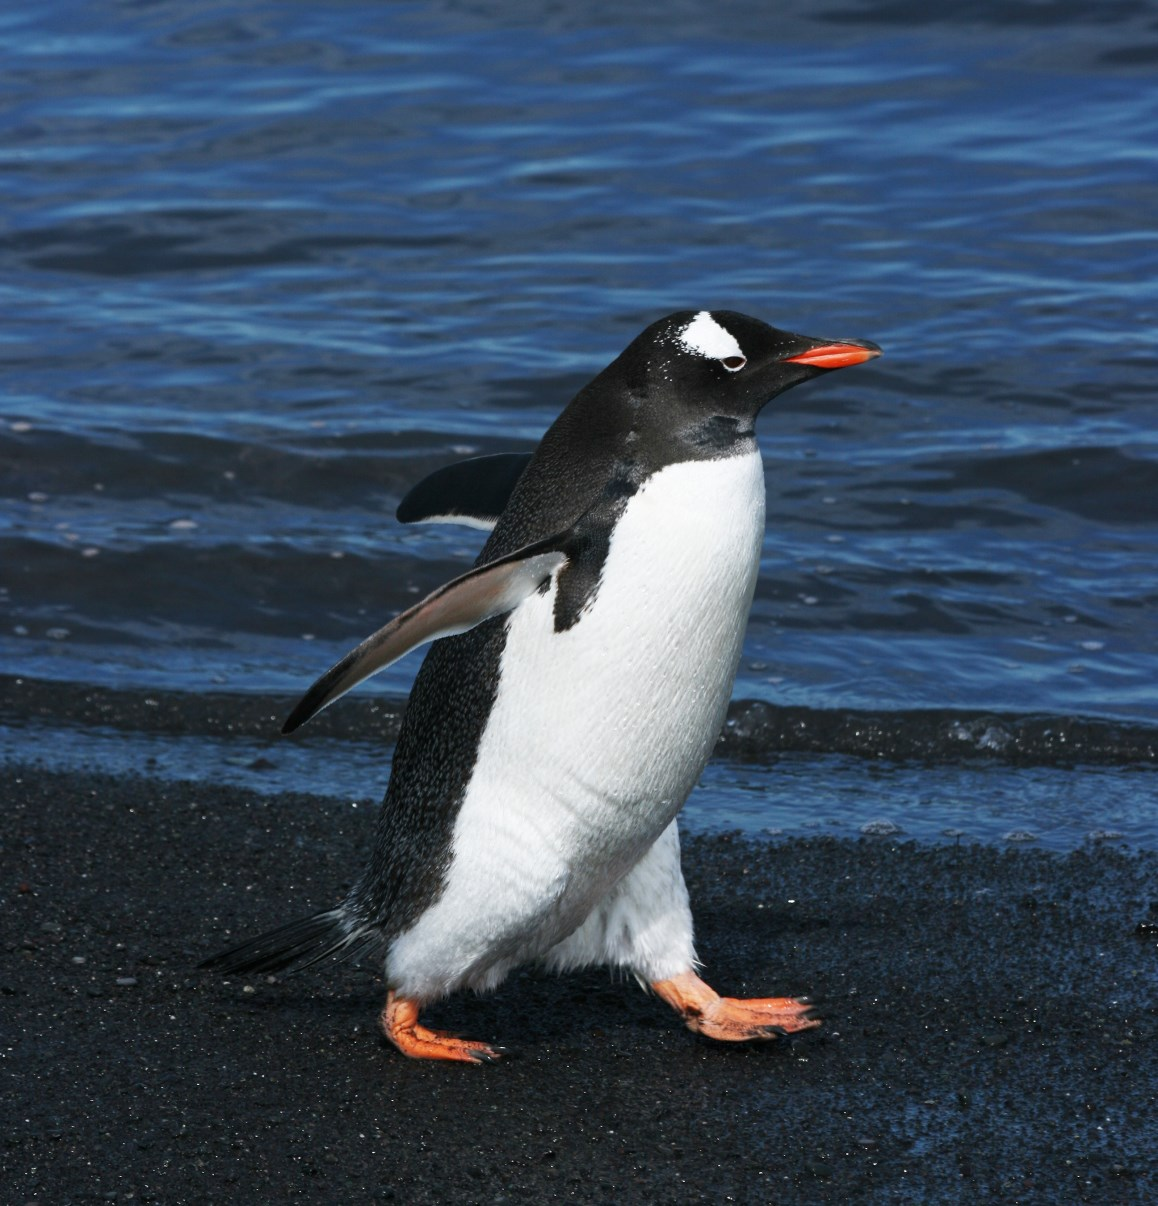 Having a stroll... (Gentoo penguin)